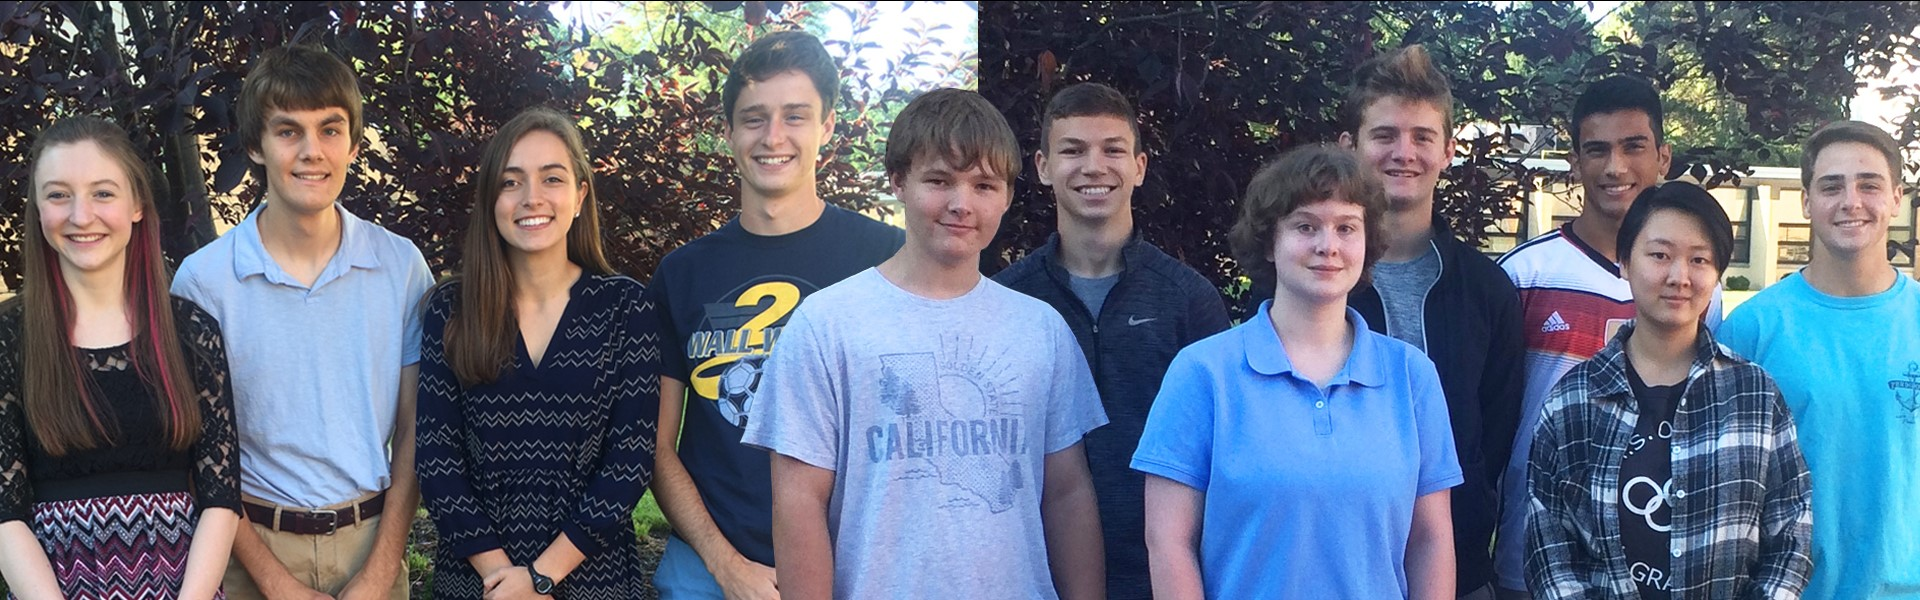 Congratulations to our National Merit Semifinalists and Commended Students! READ MORE BELOW ...